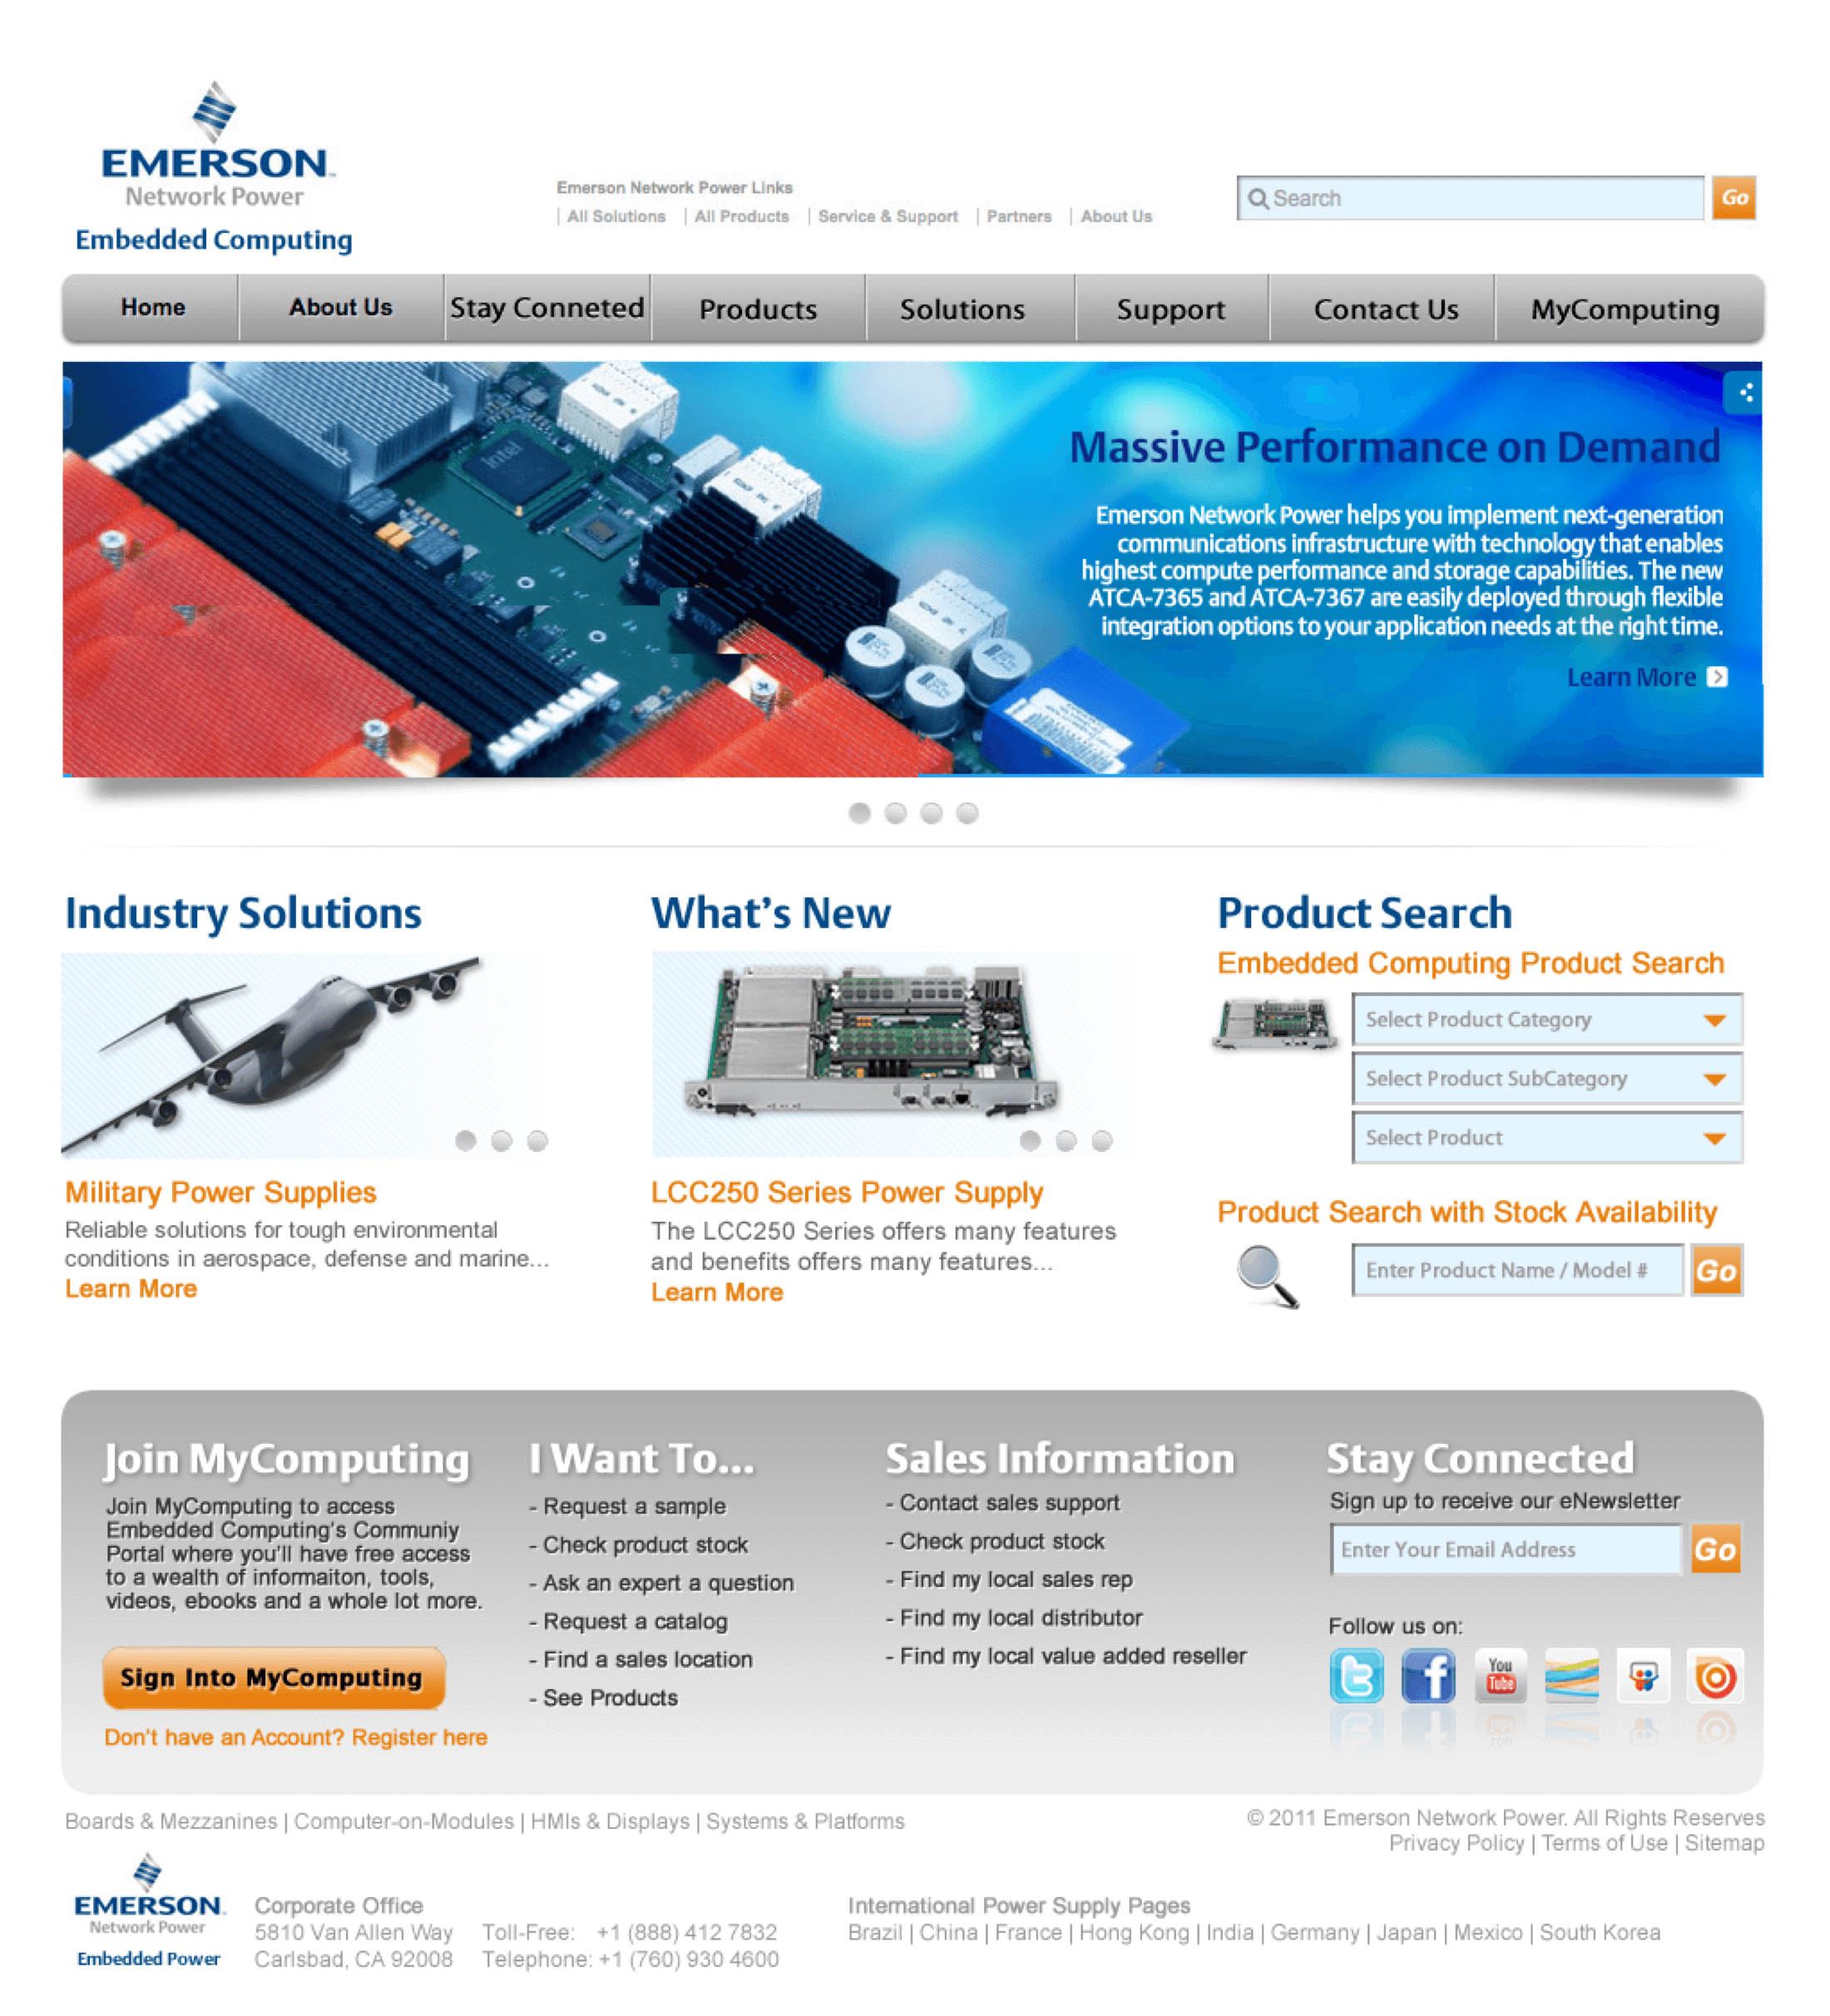 Emerson-Embedded-Computing-Home-Page